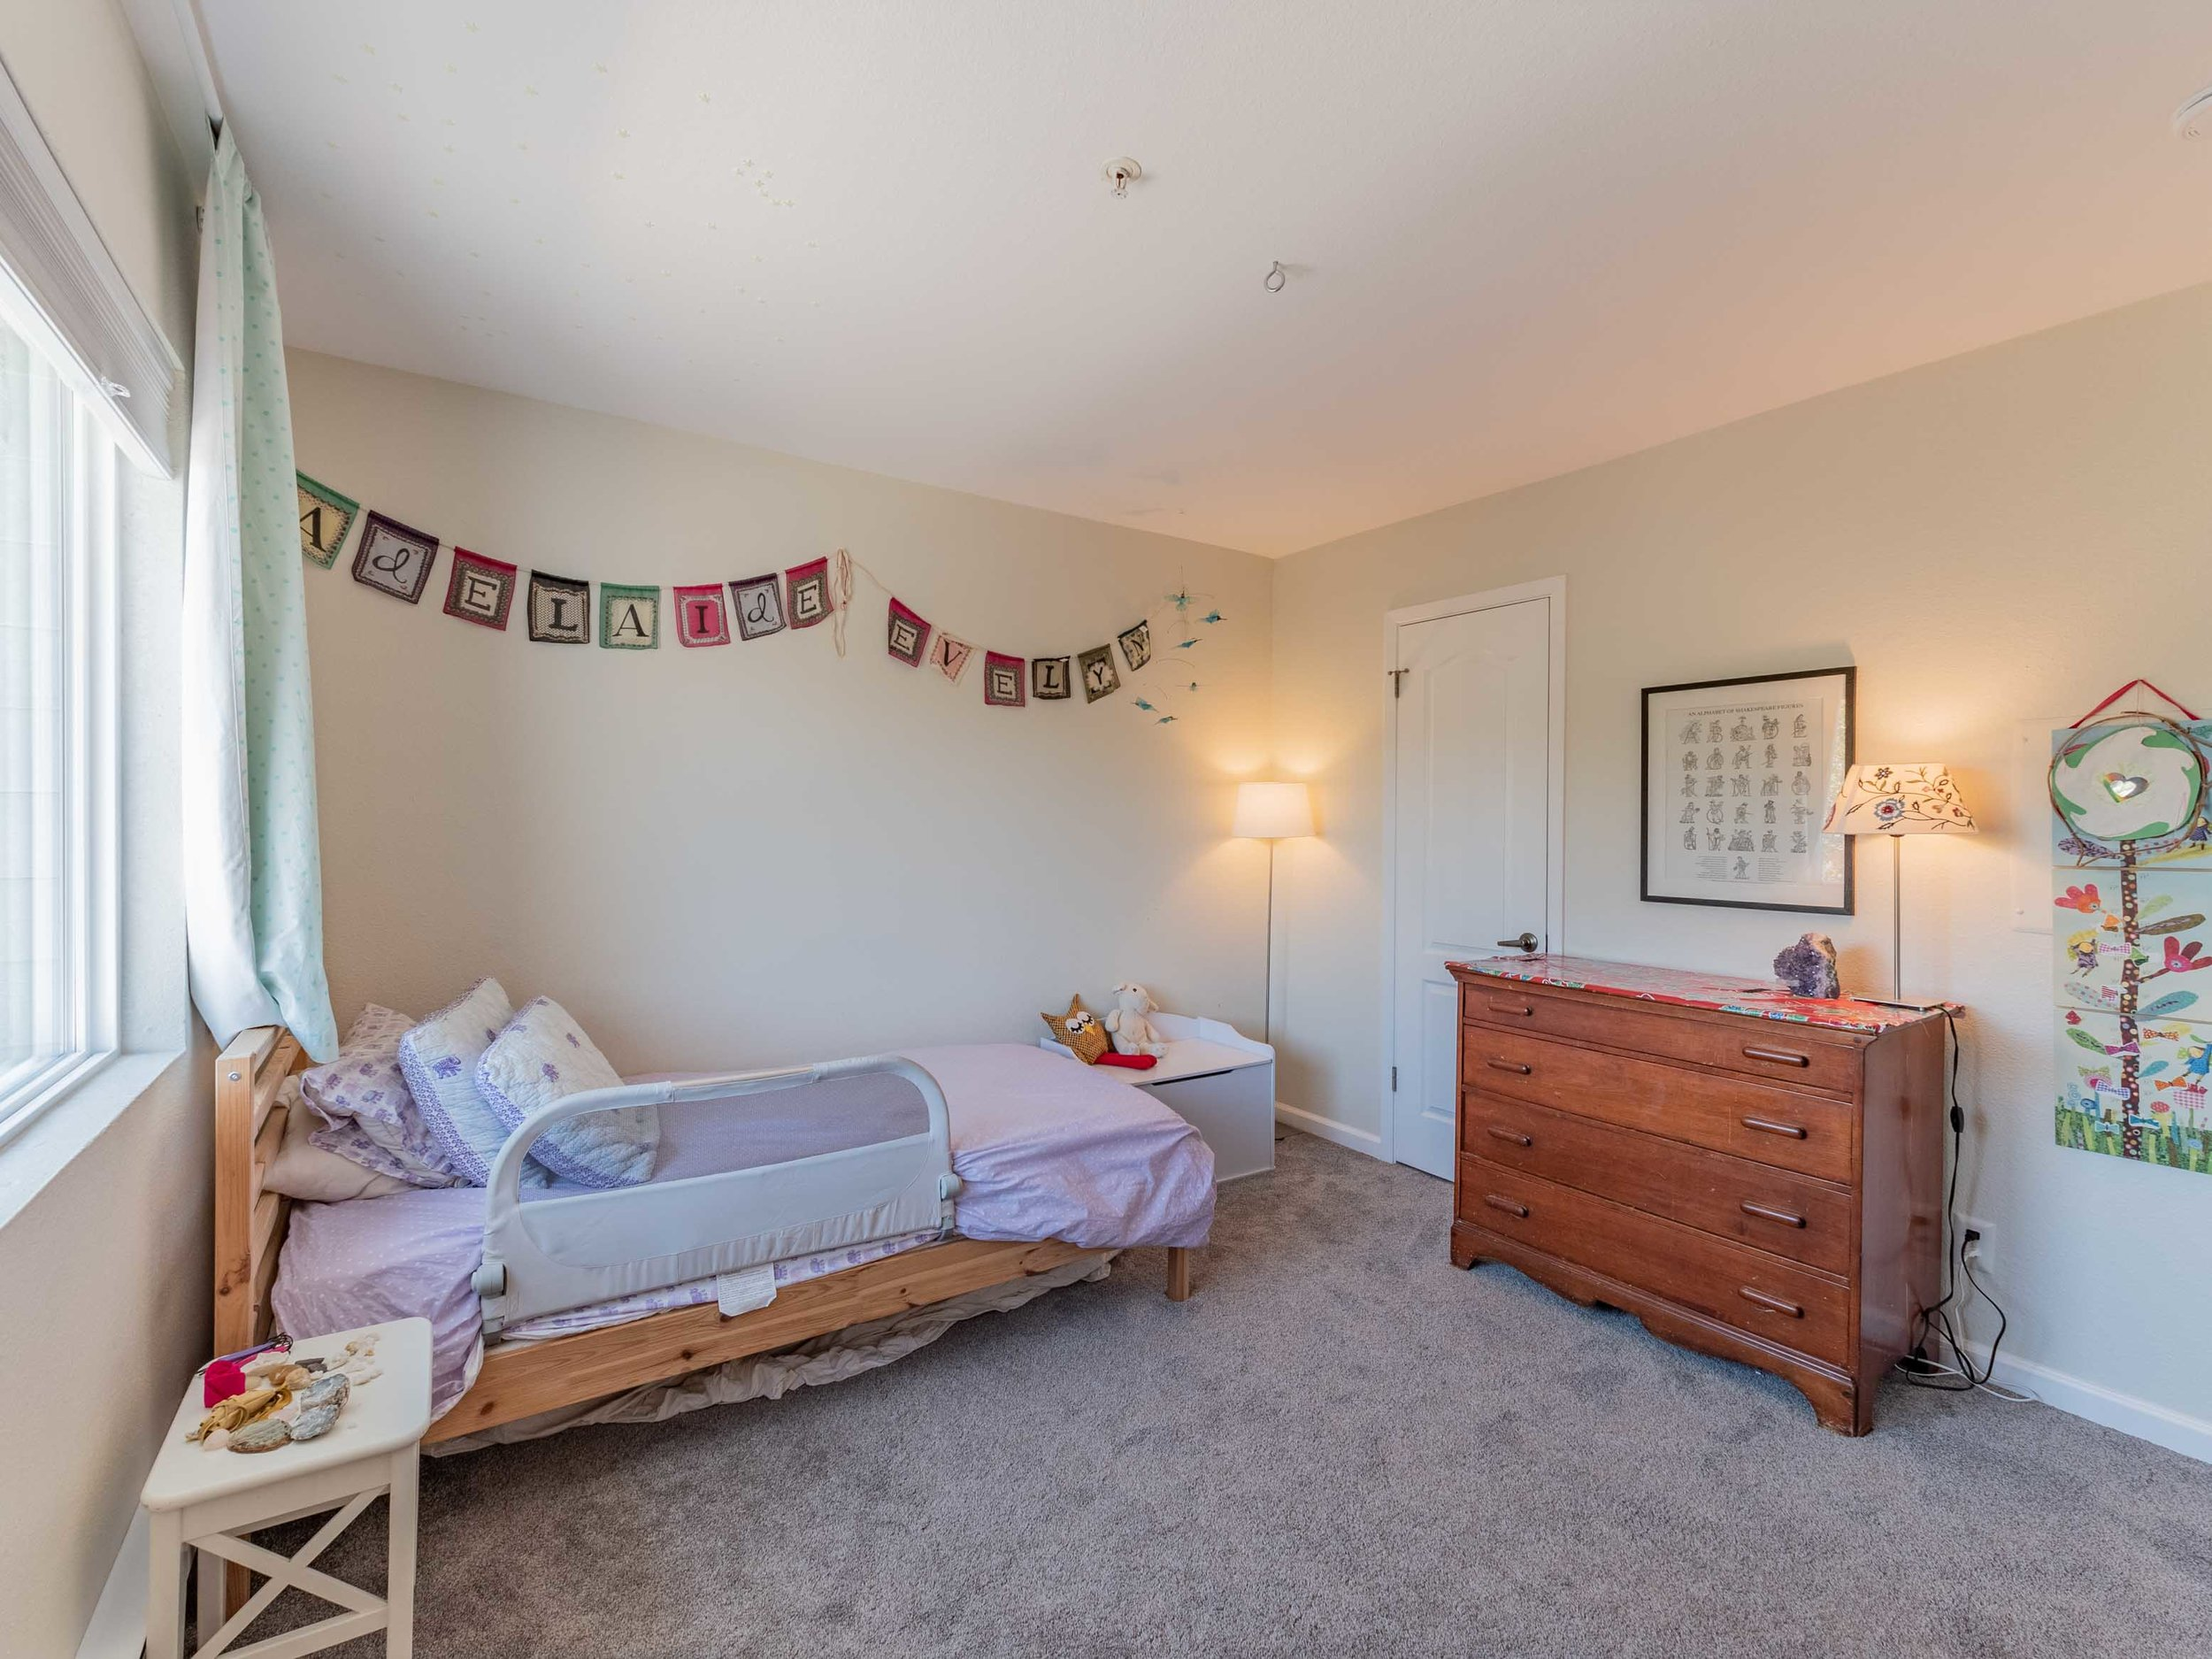 Spacious bedroom light filled